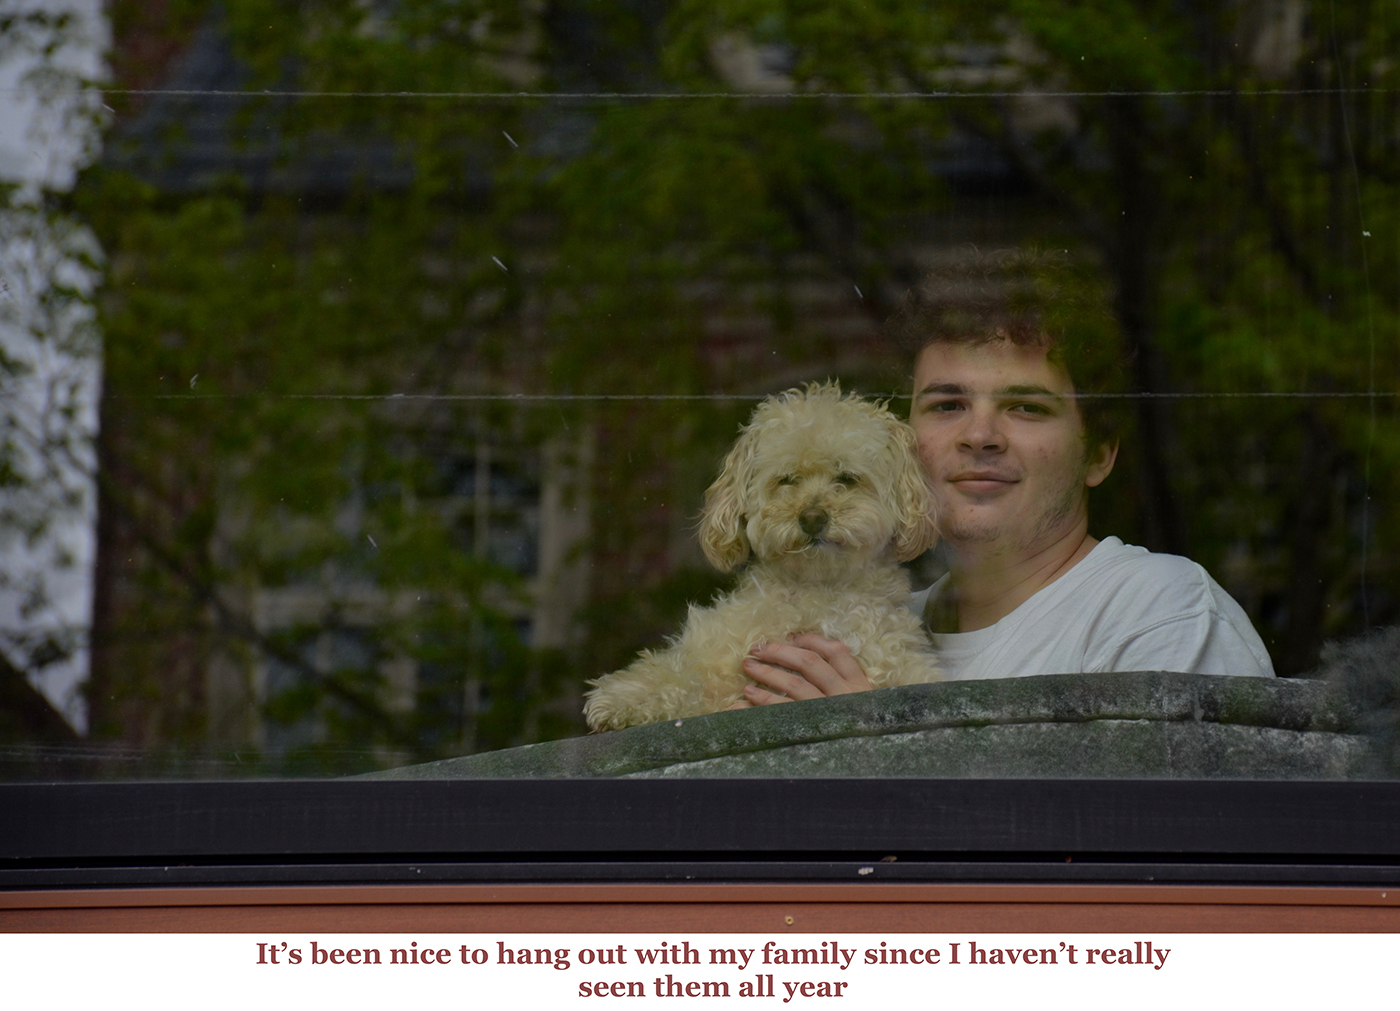 photo of person and dog at window